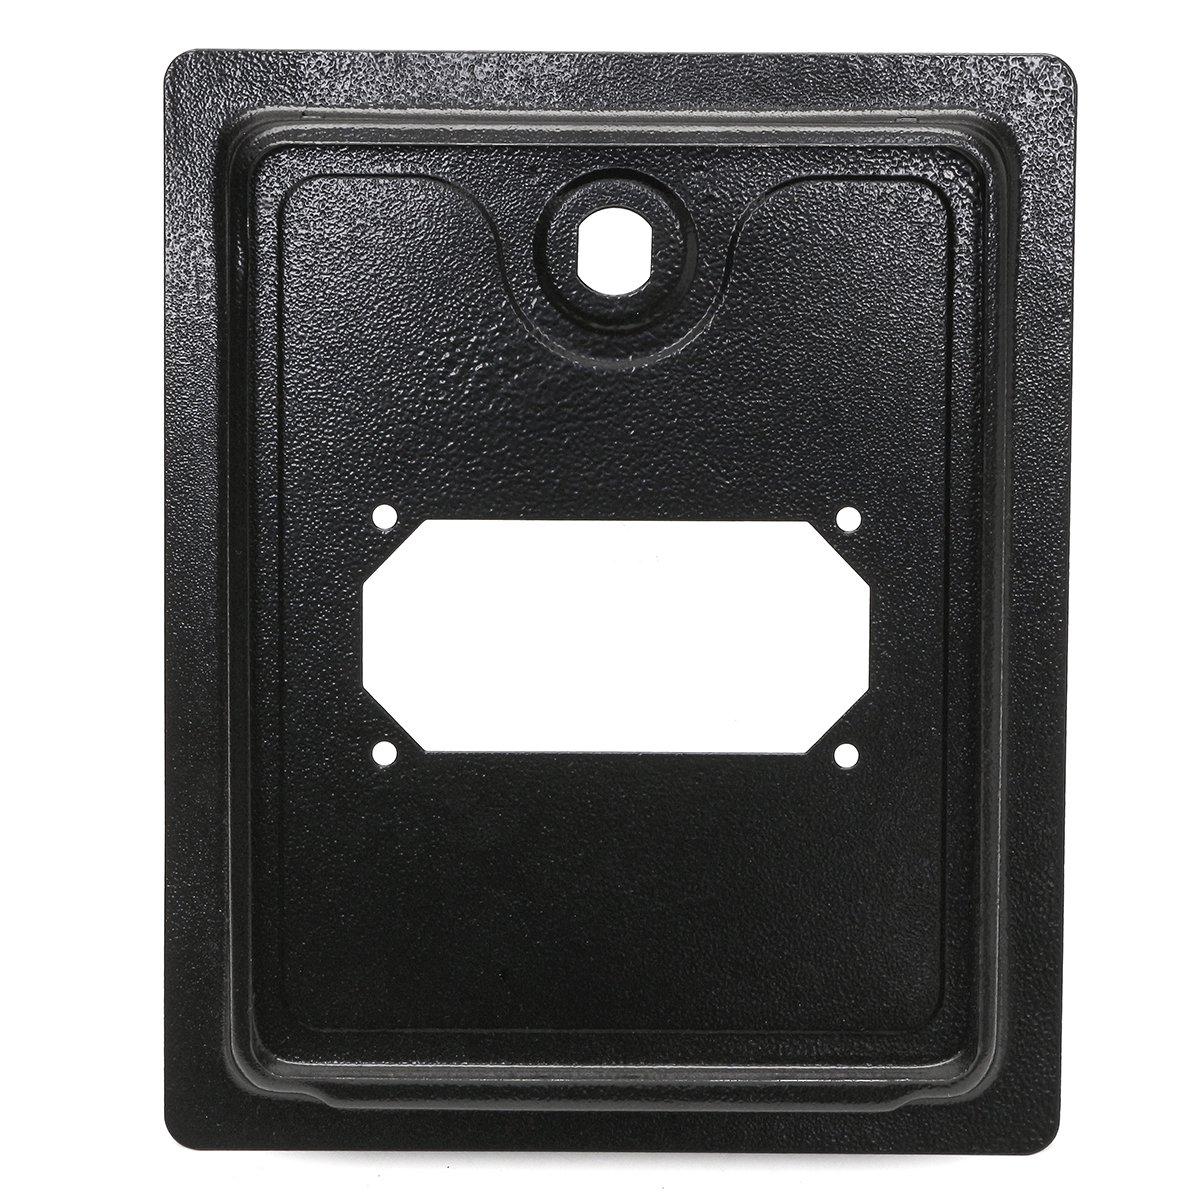 Arcade Game Coin Door Access Sturdy Reliable for Coin Acceptor Jamma Mame